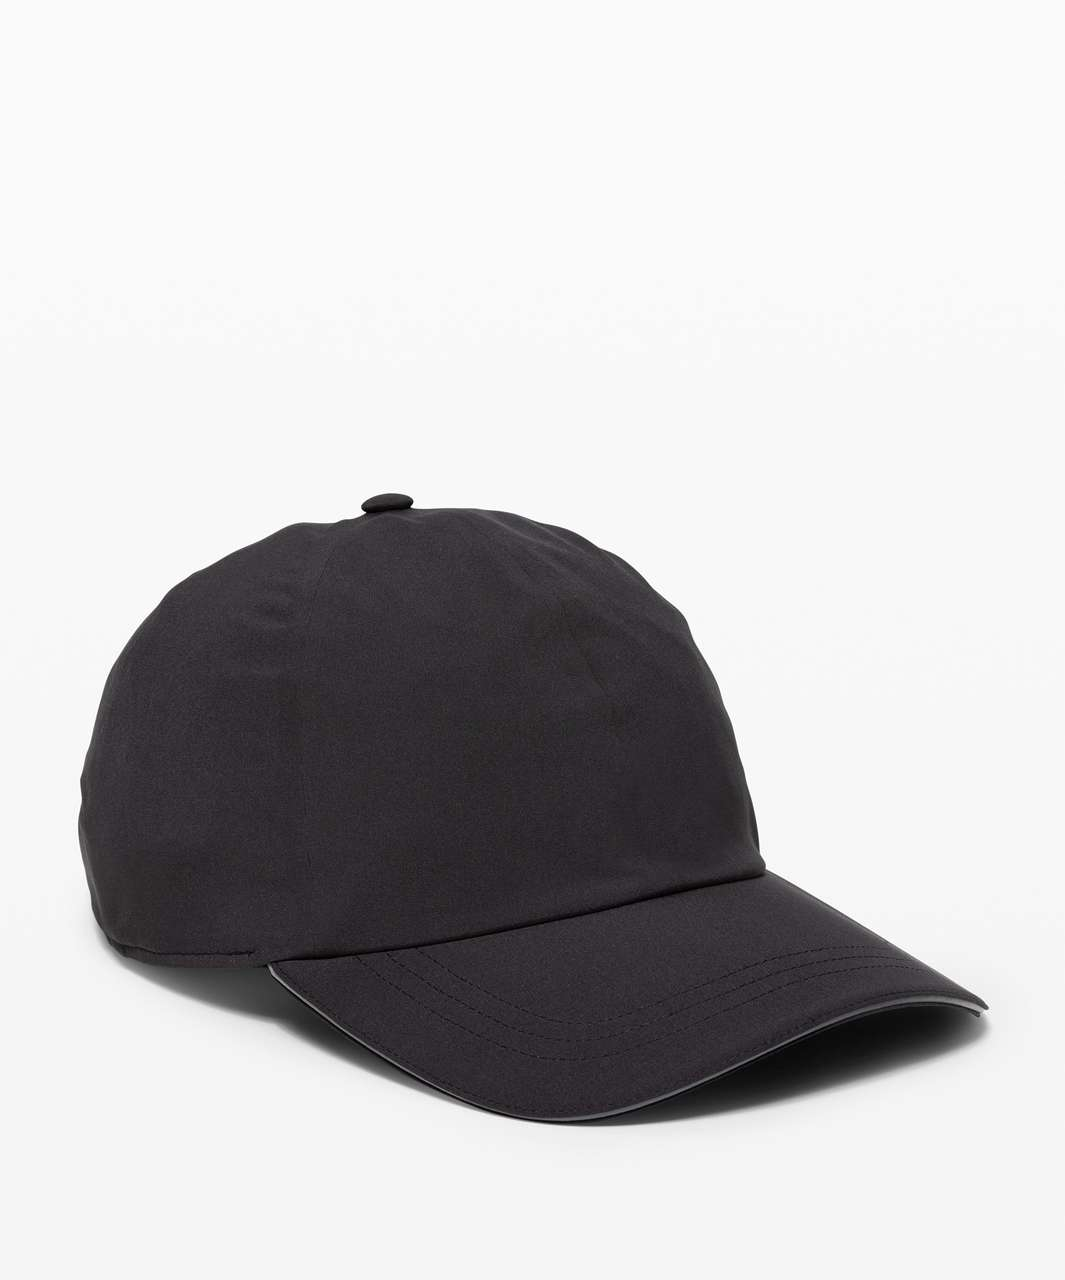 Lululemon Baller Hat Run - Black